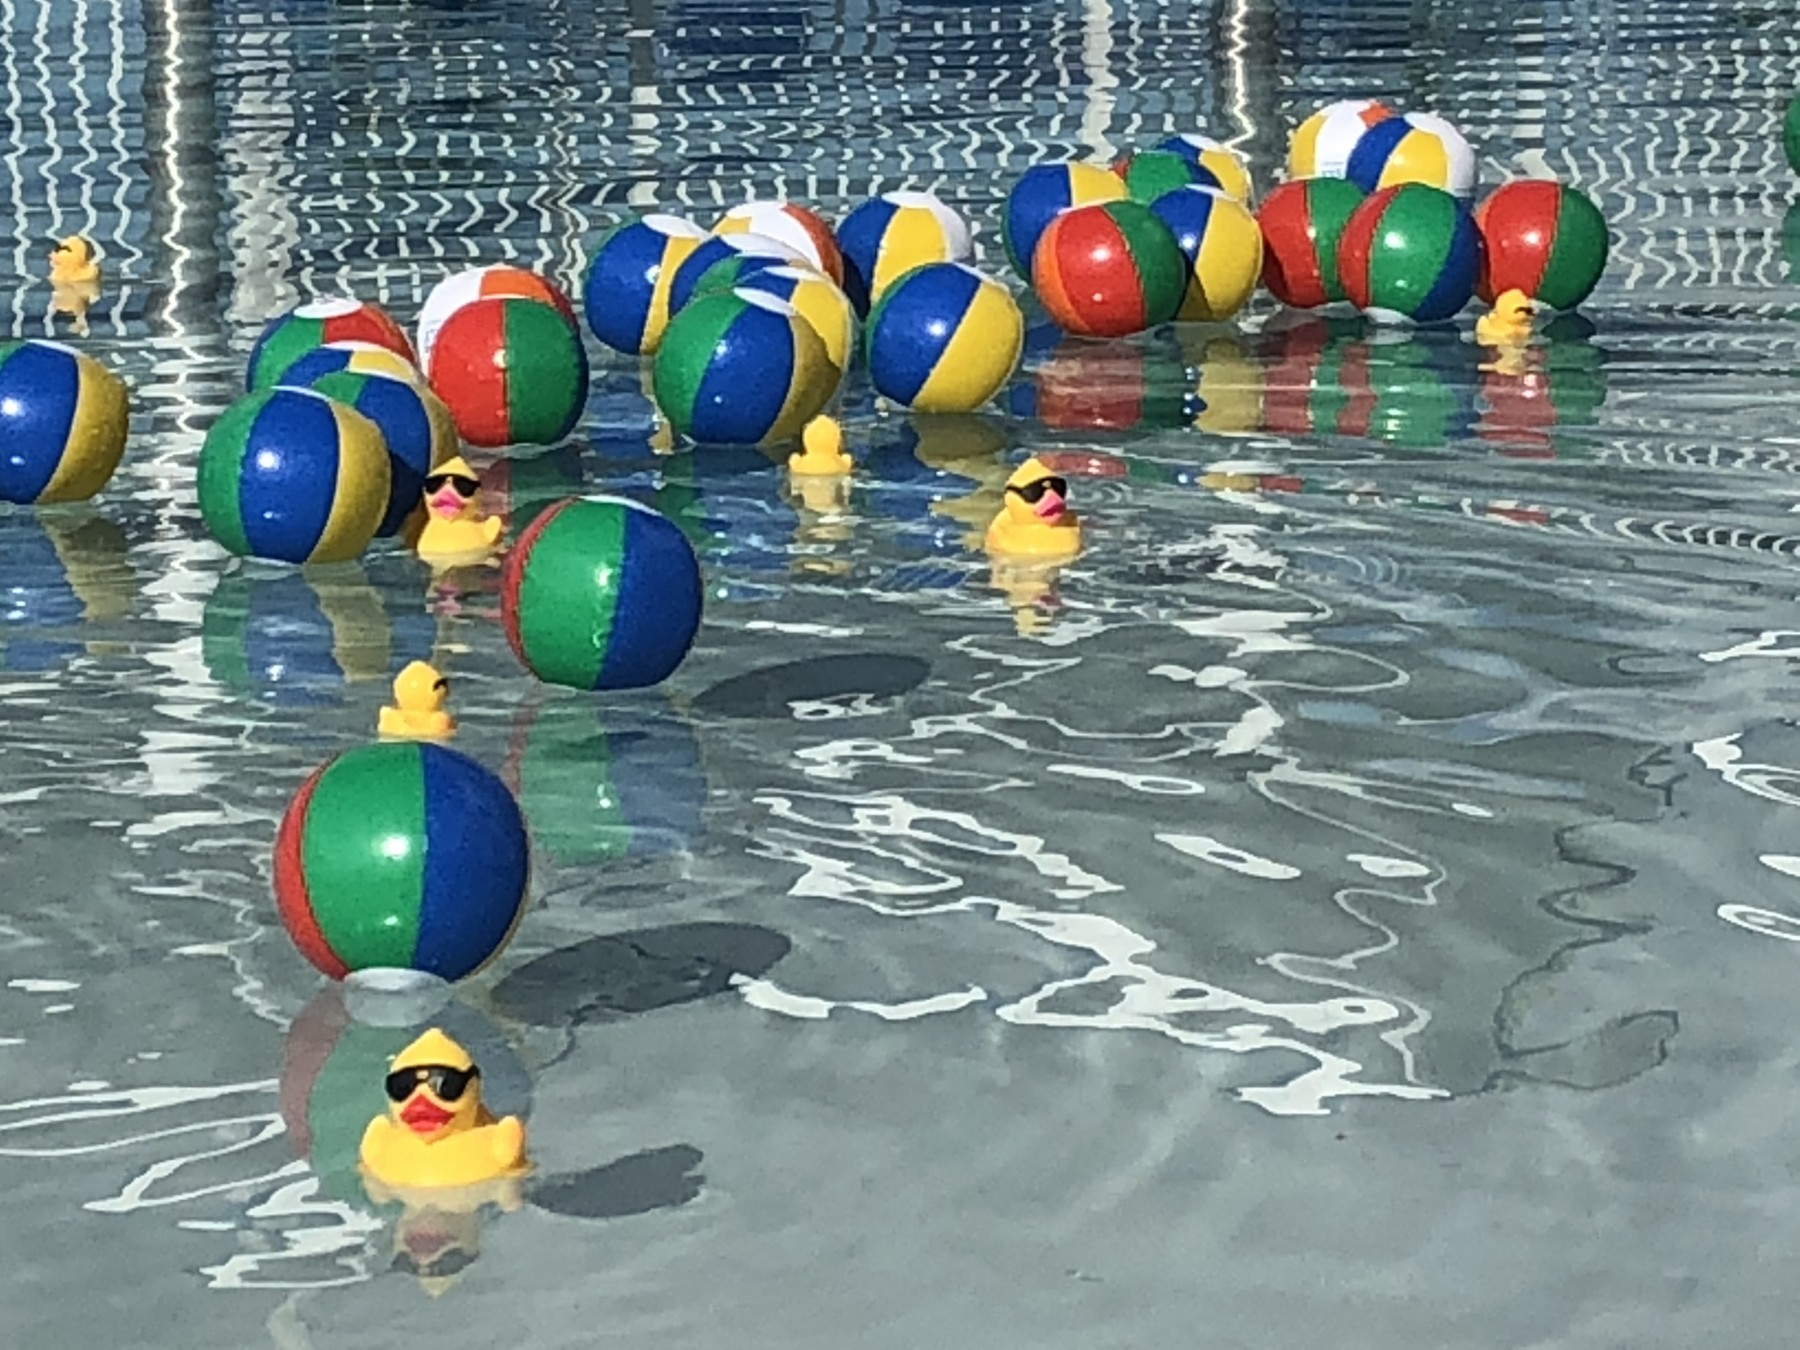 Adopt a Duck for Water Safety